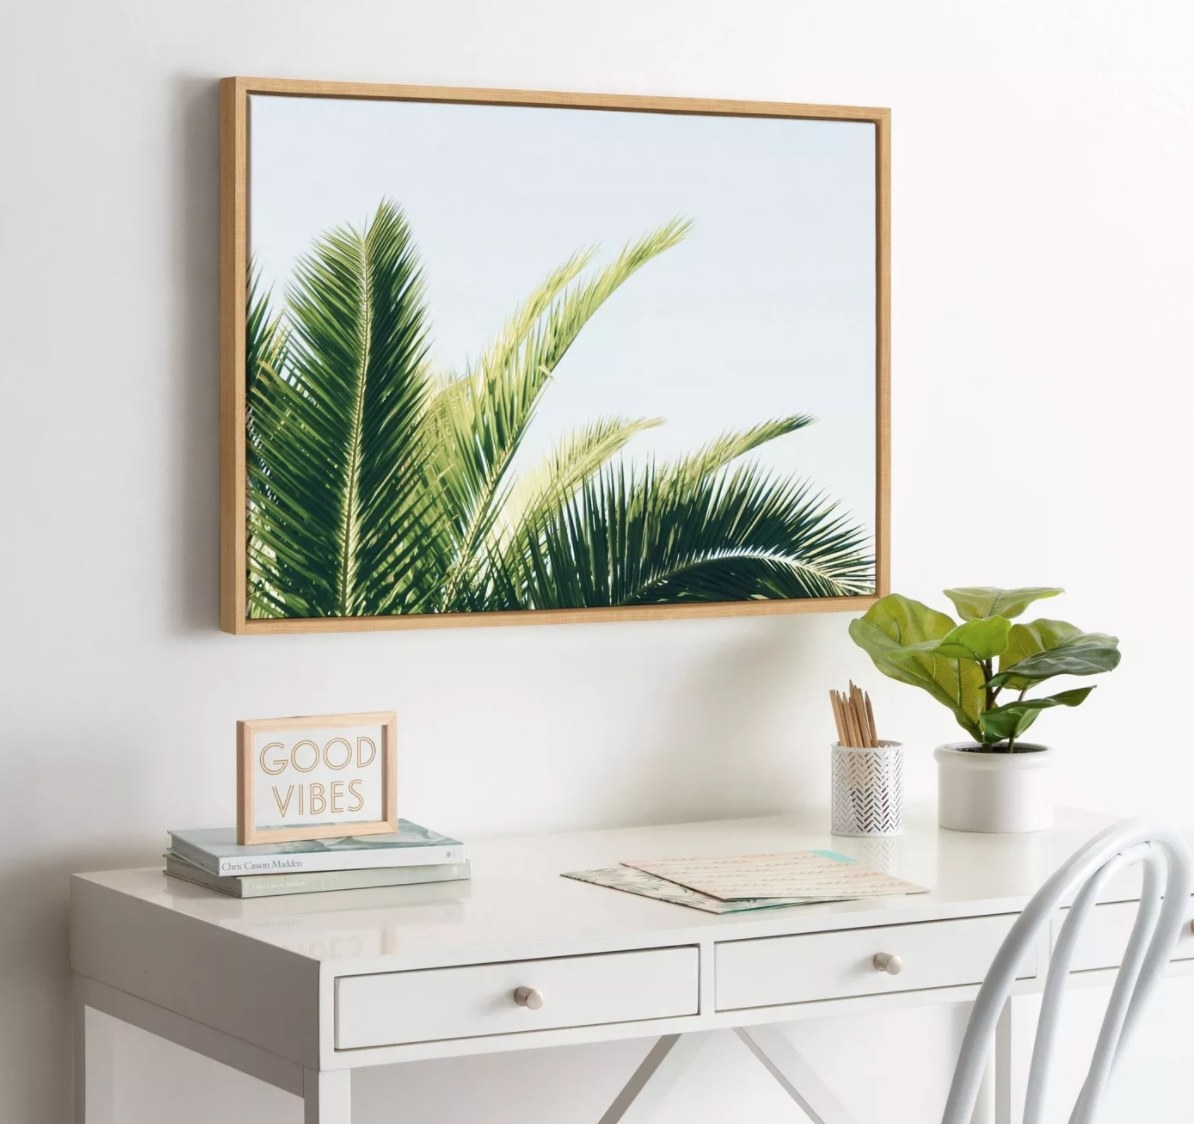 The picture of a tropical palm in a wood frame hung above a white desk